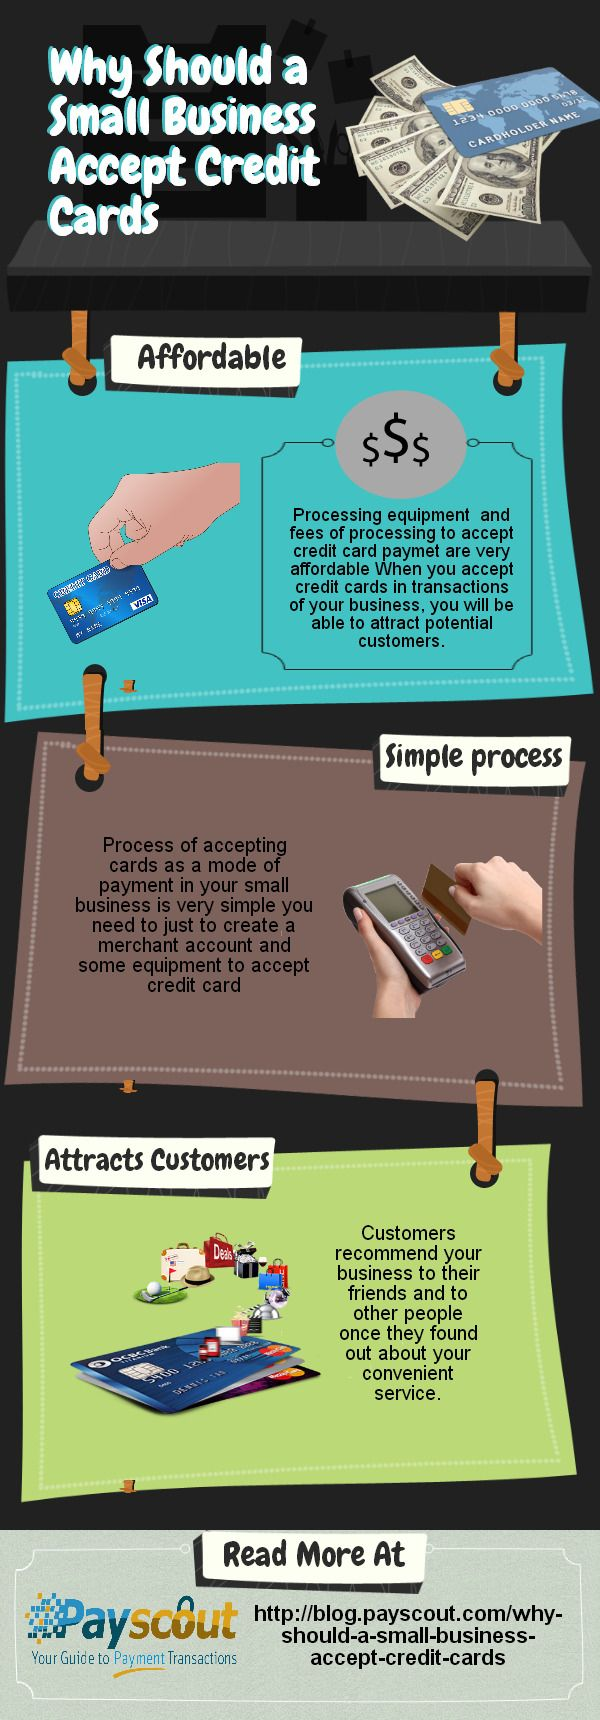 Small Business Accepting Credit Card Payments Image collections ...